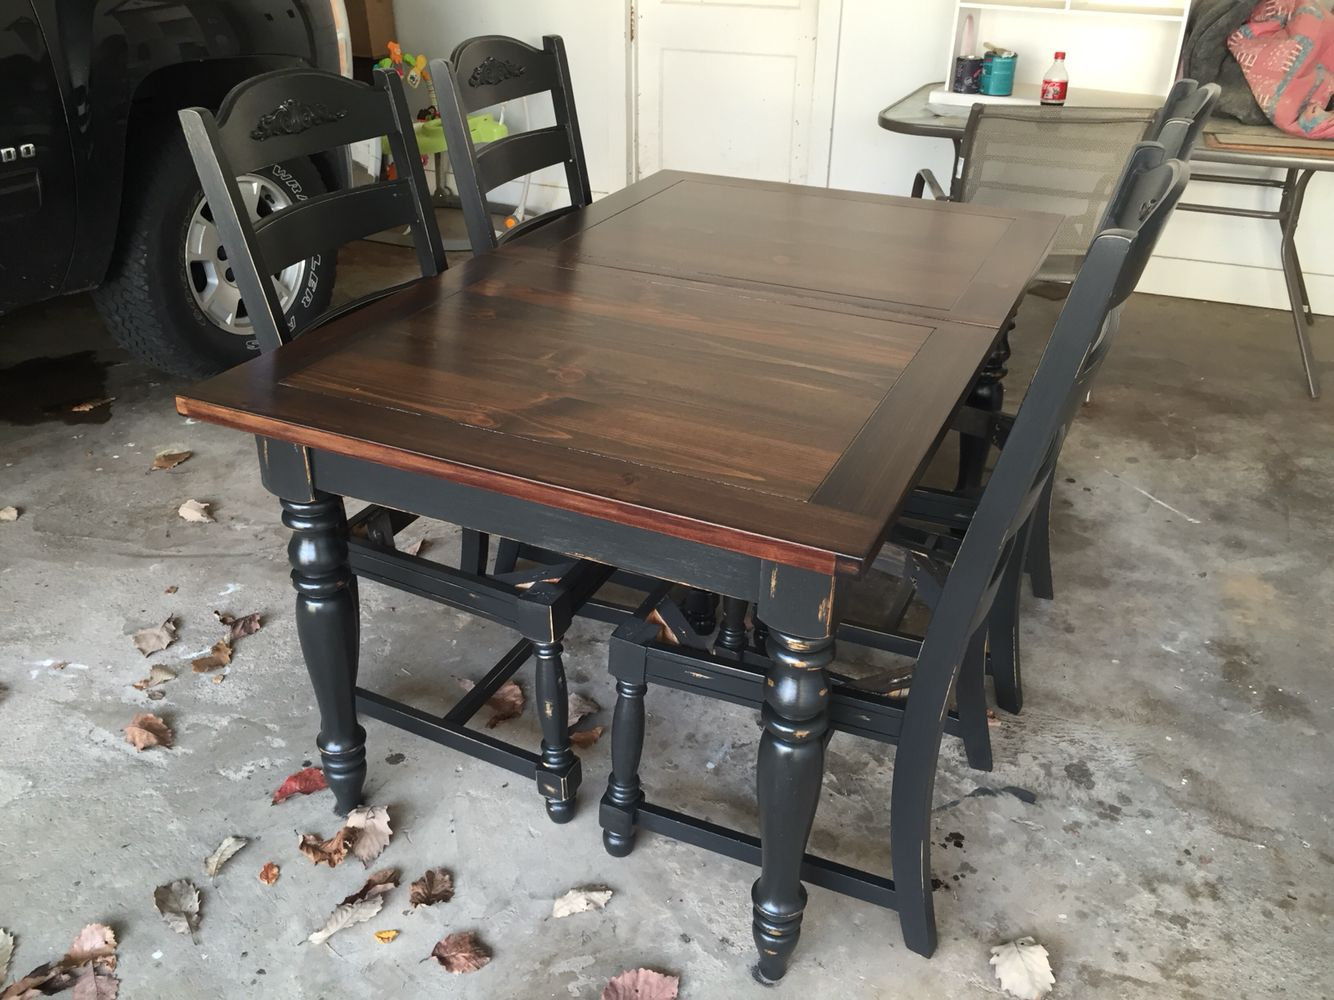 Refinished oak table, base and chairs chalk painted Black